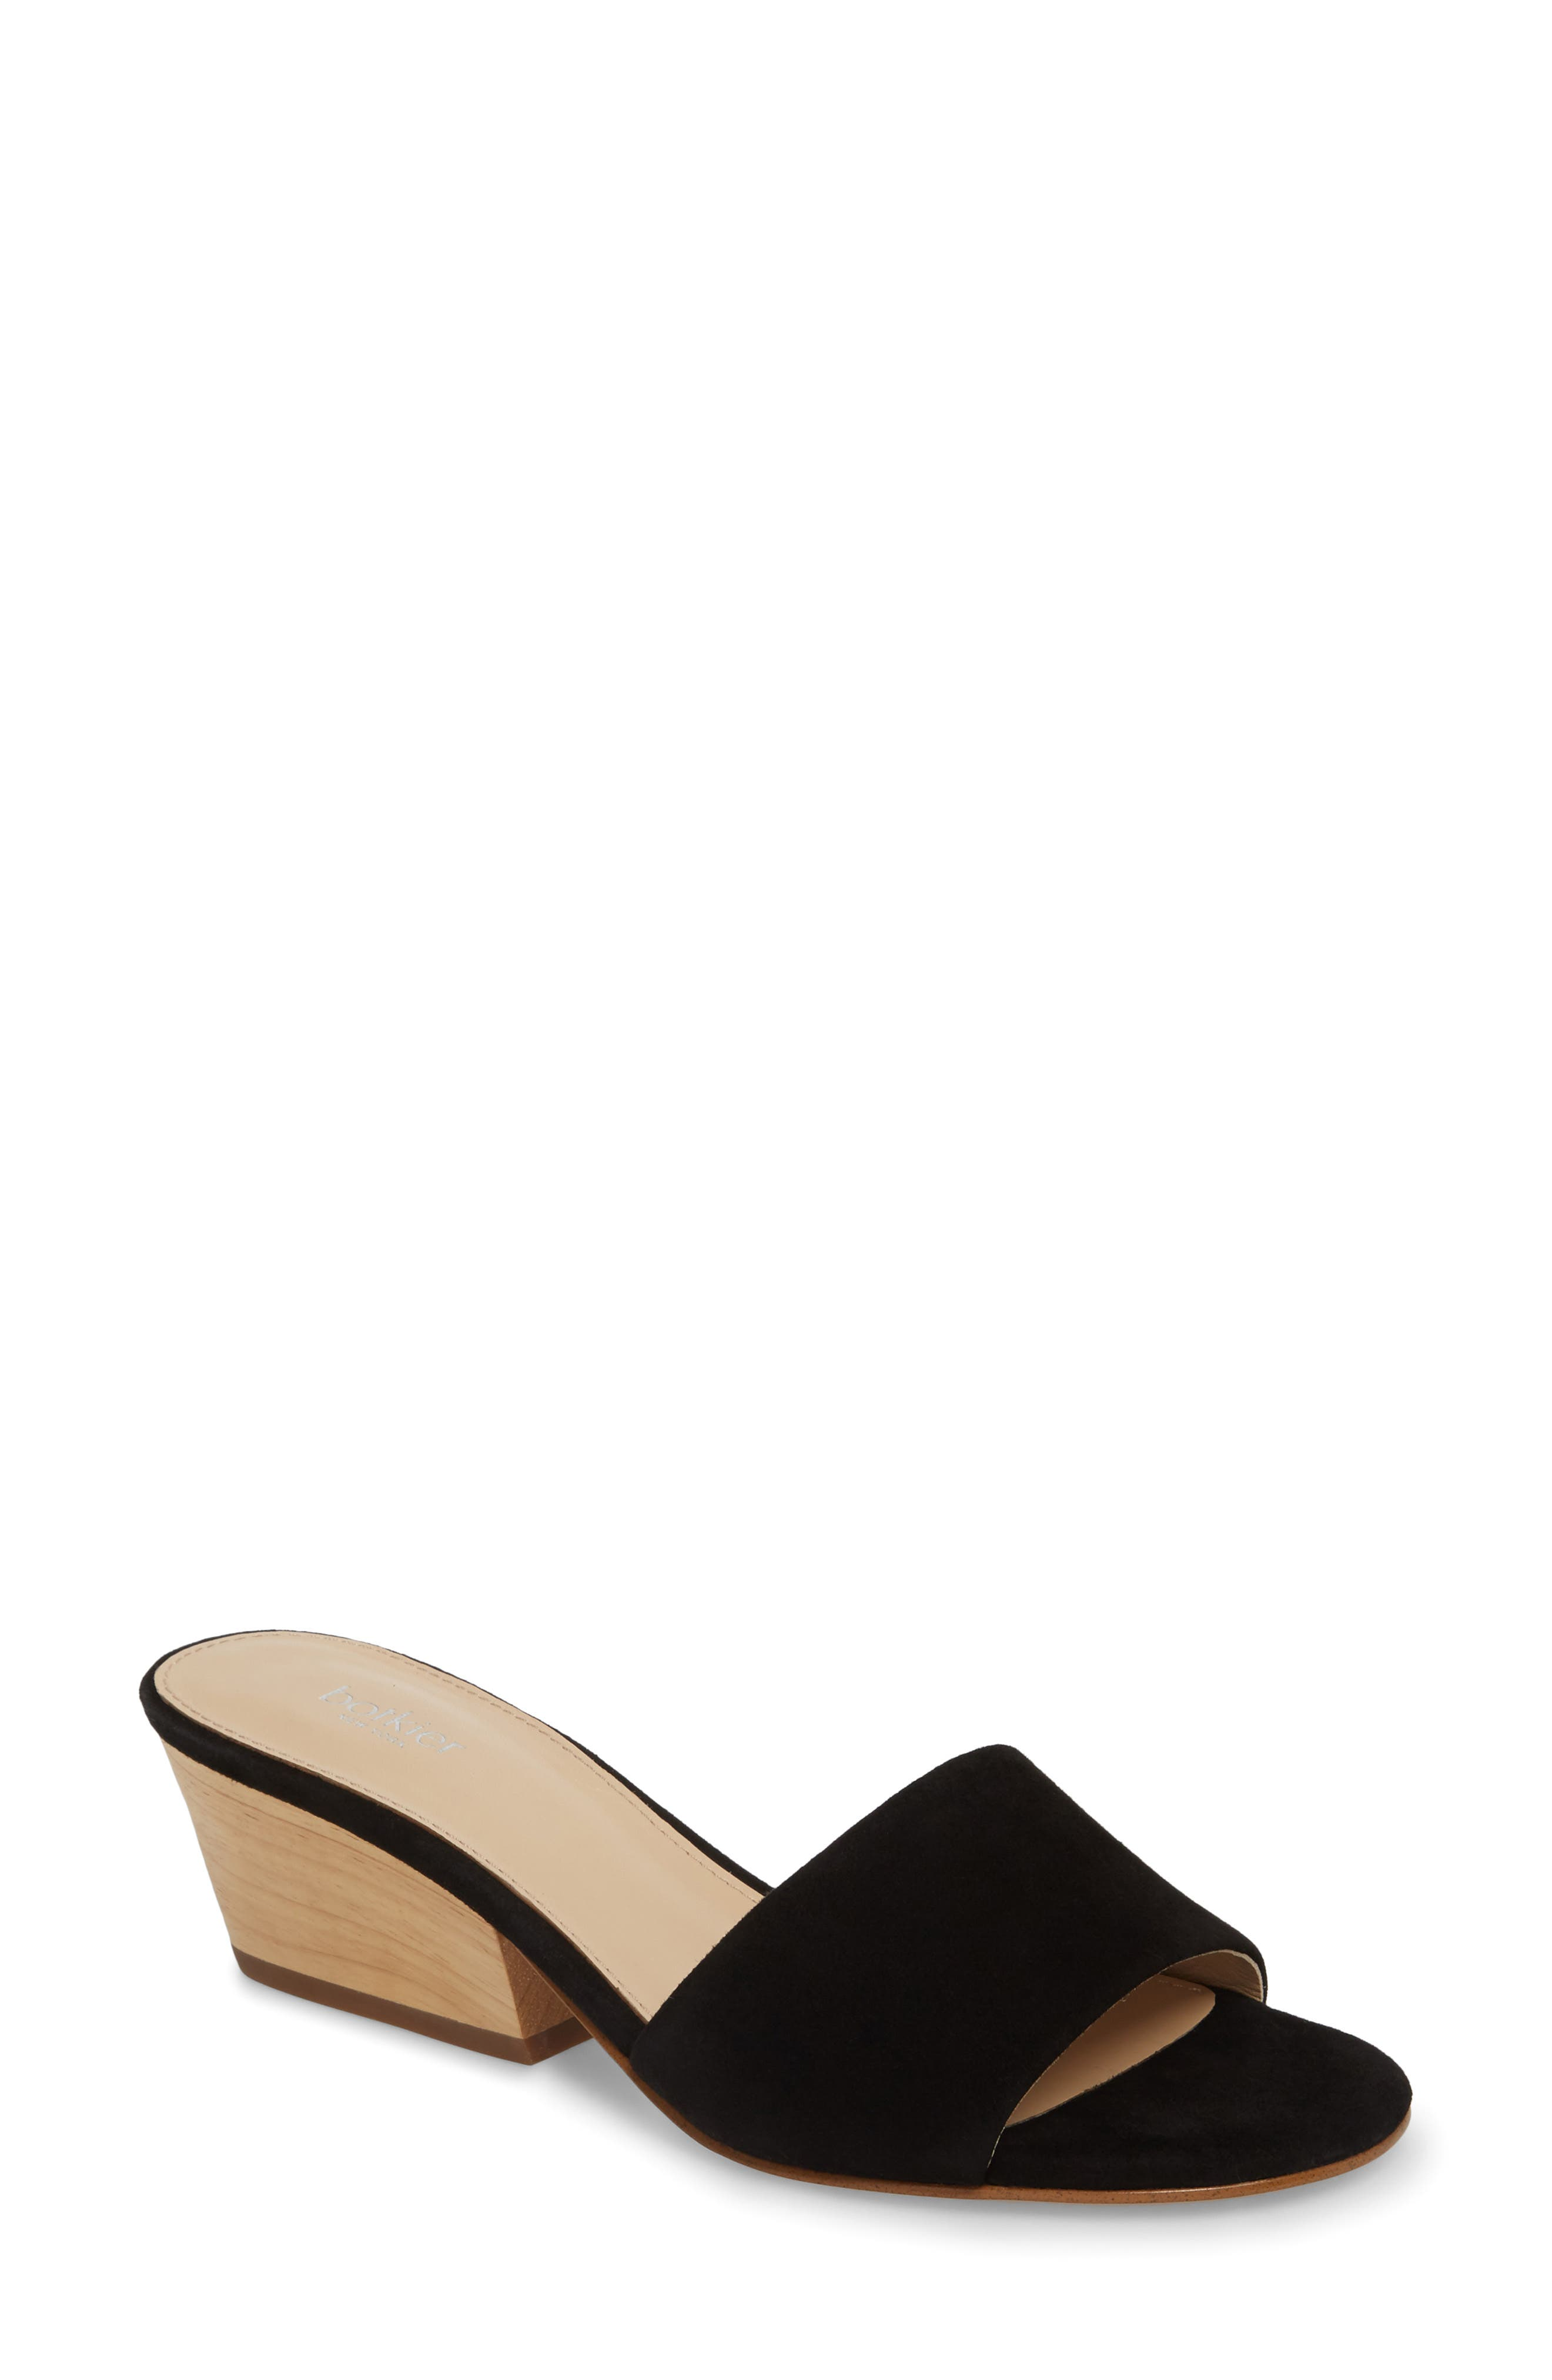 Carlie Mule,                             Main thumbnail 1, color,                             BLACK SUEDE